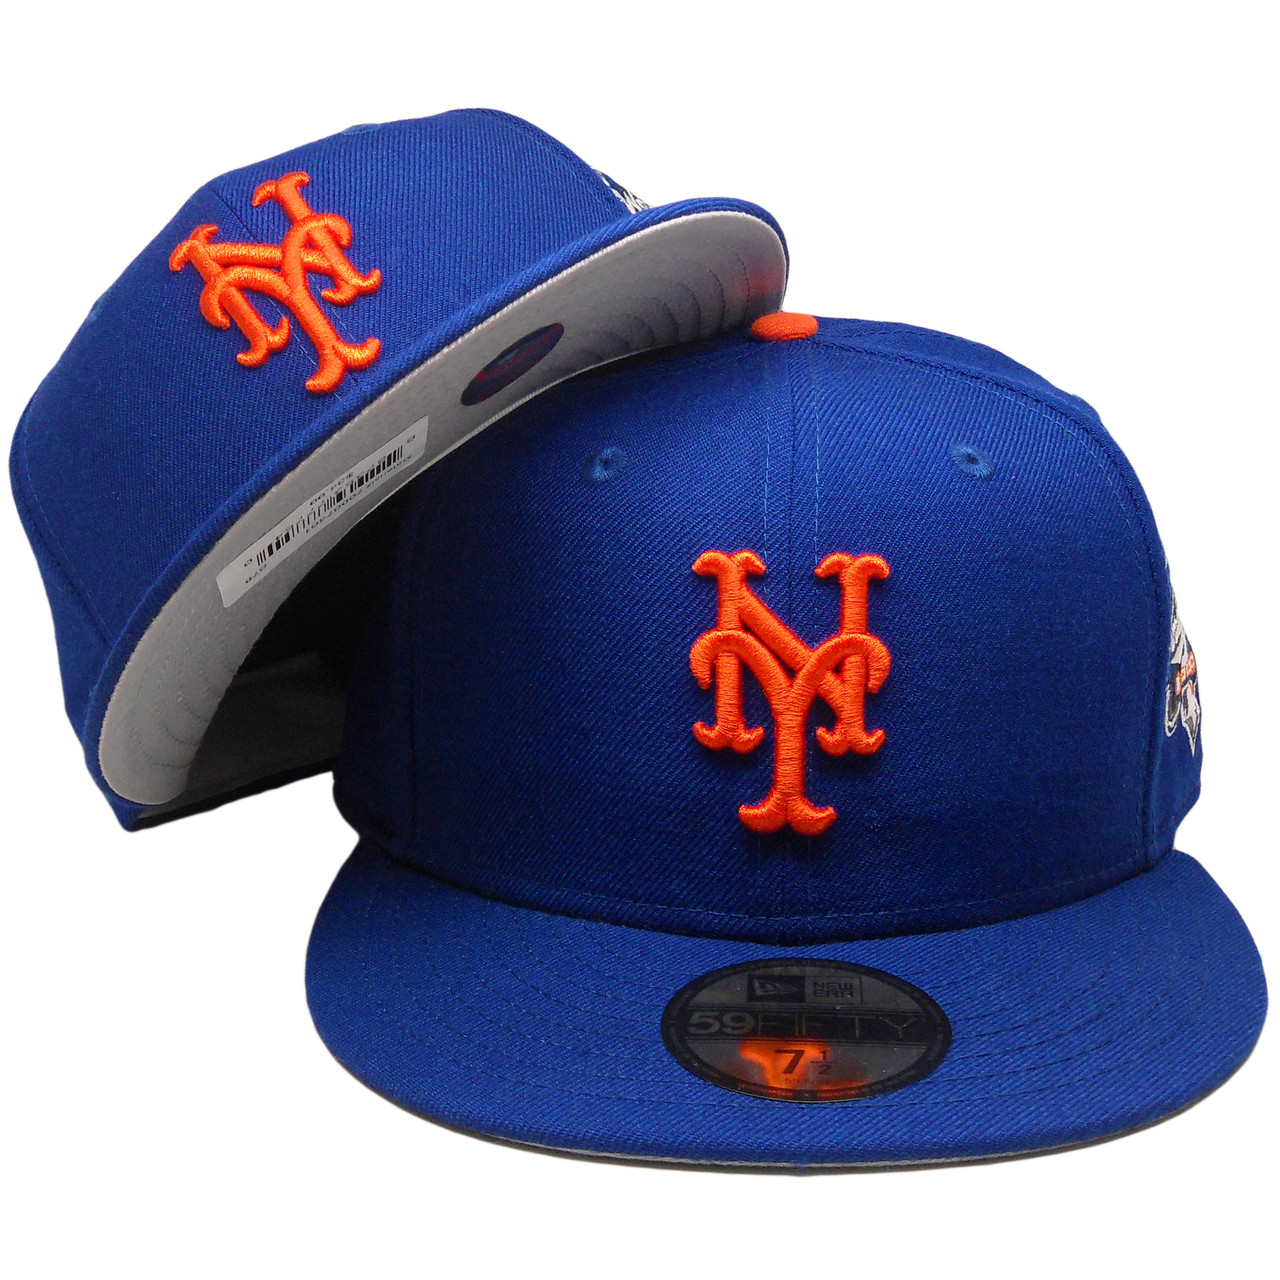 7f895fb87e6 New York Mets New Era Custom 59Fifty Fitted Hat - Royal